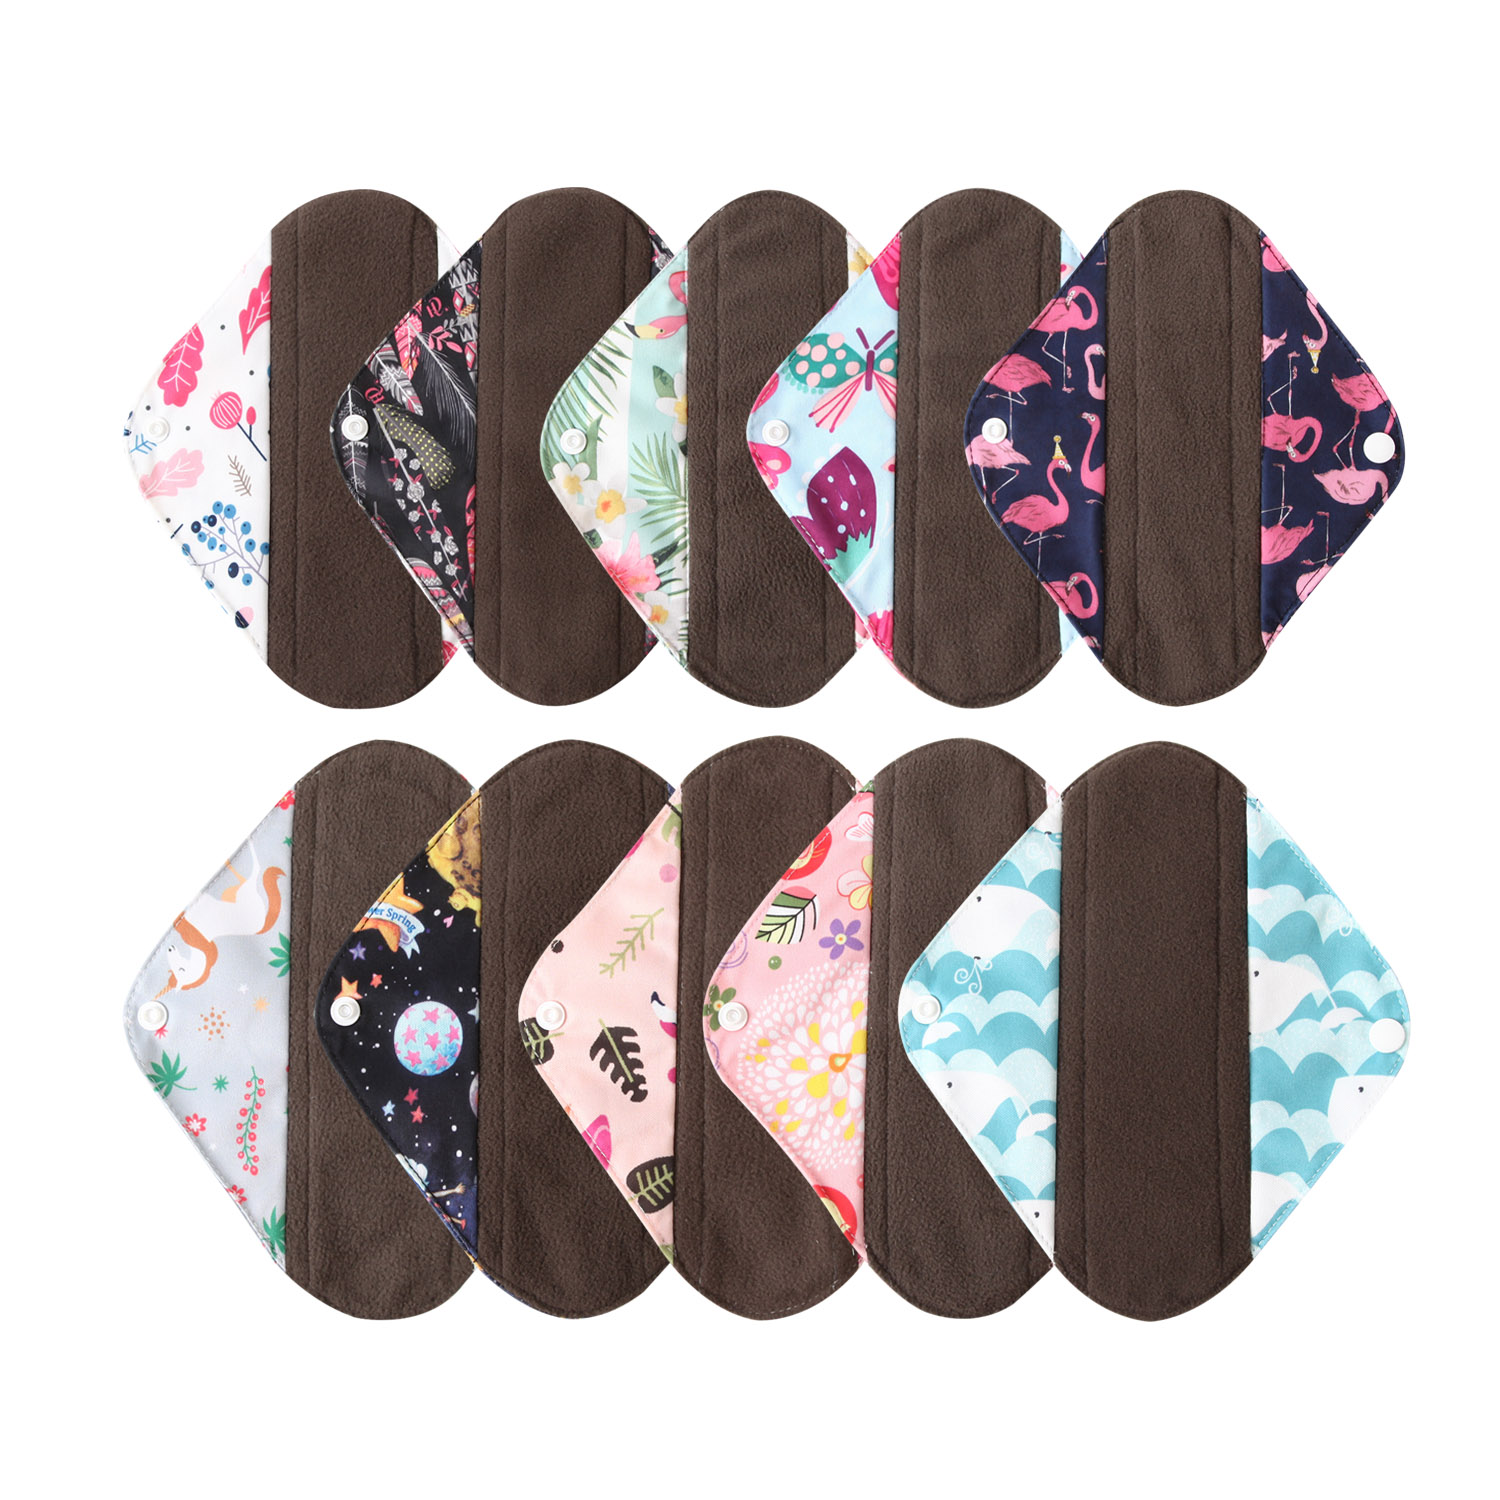 Ohbabyka S M L Long Panty Liner Cloth Menstrual Pad Bamboo Charcoal Mama Sanitary Reusable Sanitary Pads Reusable Washable